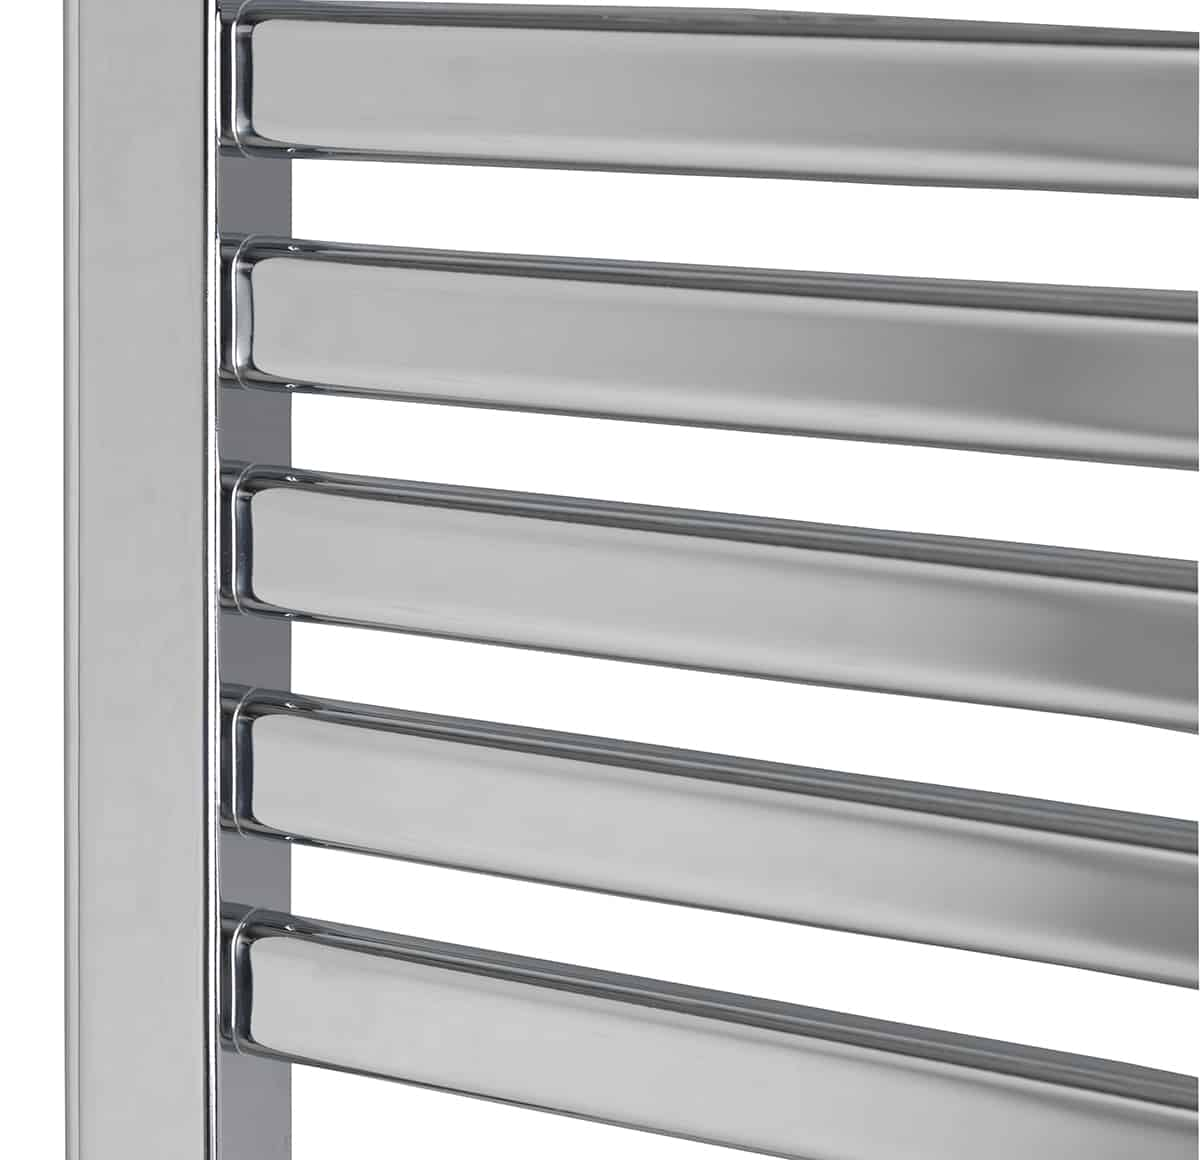 Heated Towel Rail Timer Wiring Diagram: The Crosby Heated Towel Rail Electric Ptc With Wireless